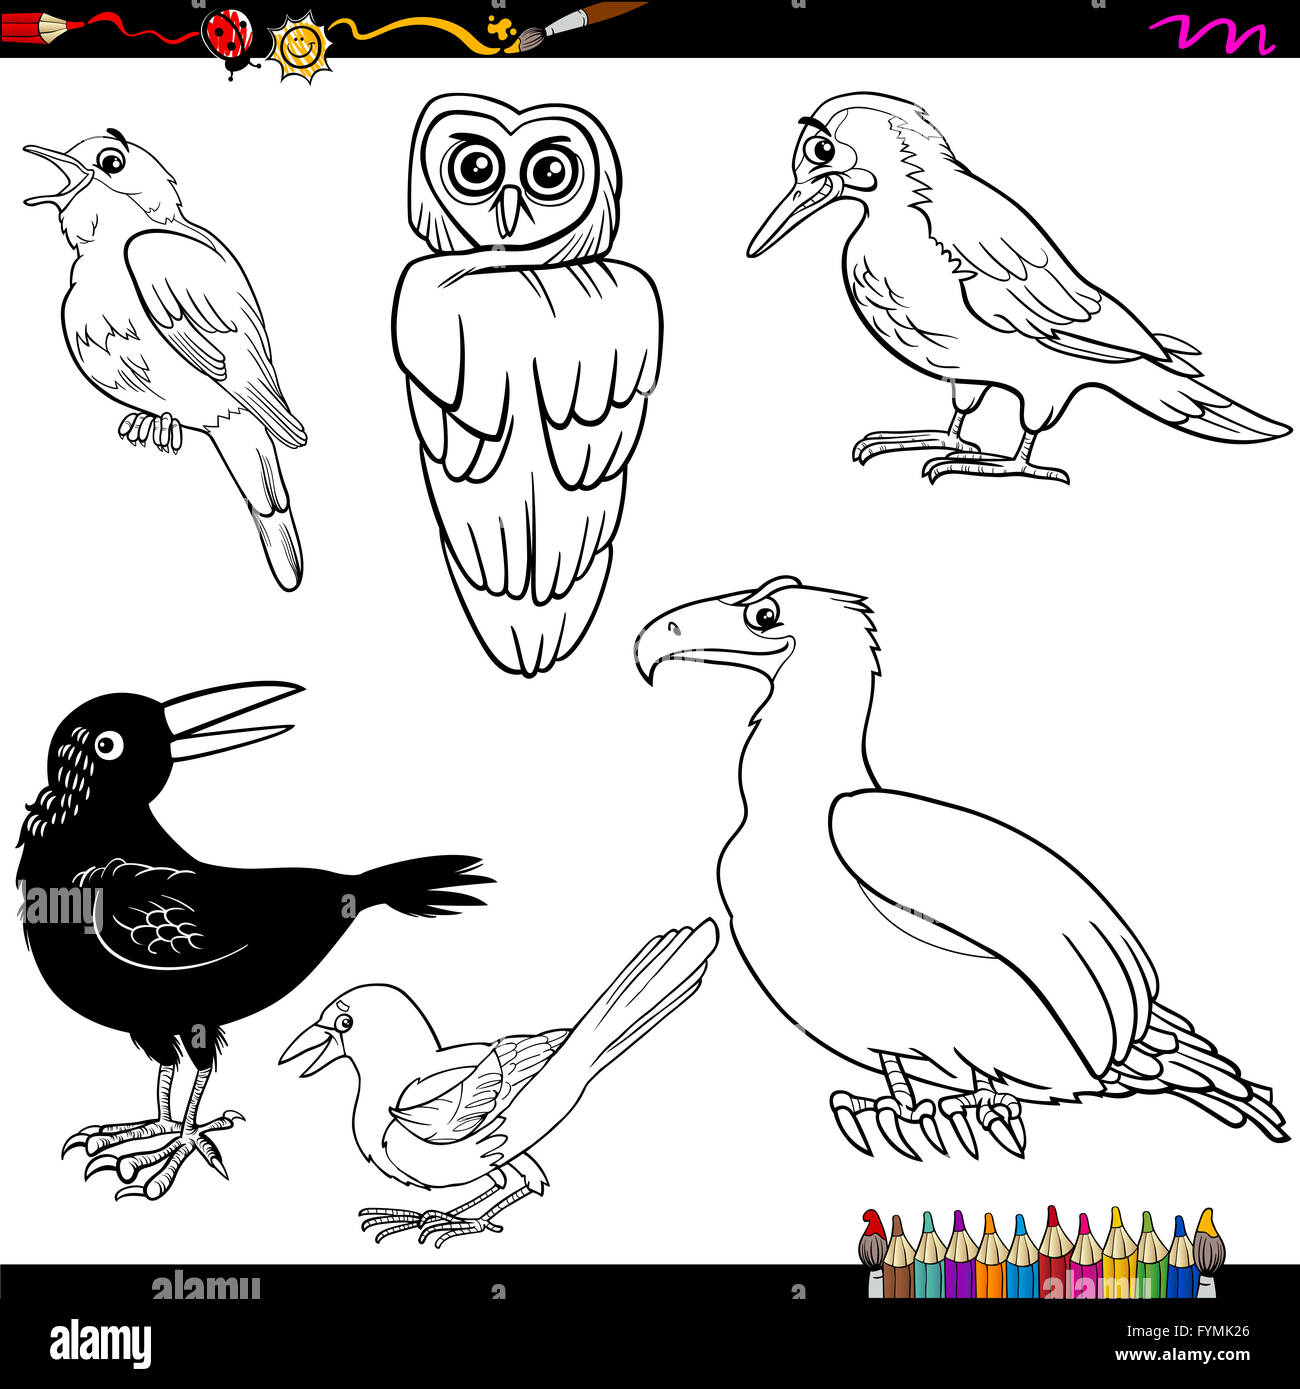 Malvorlagen Vögel cartoon Stockfoto, Bild: 103101550 - Alamy